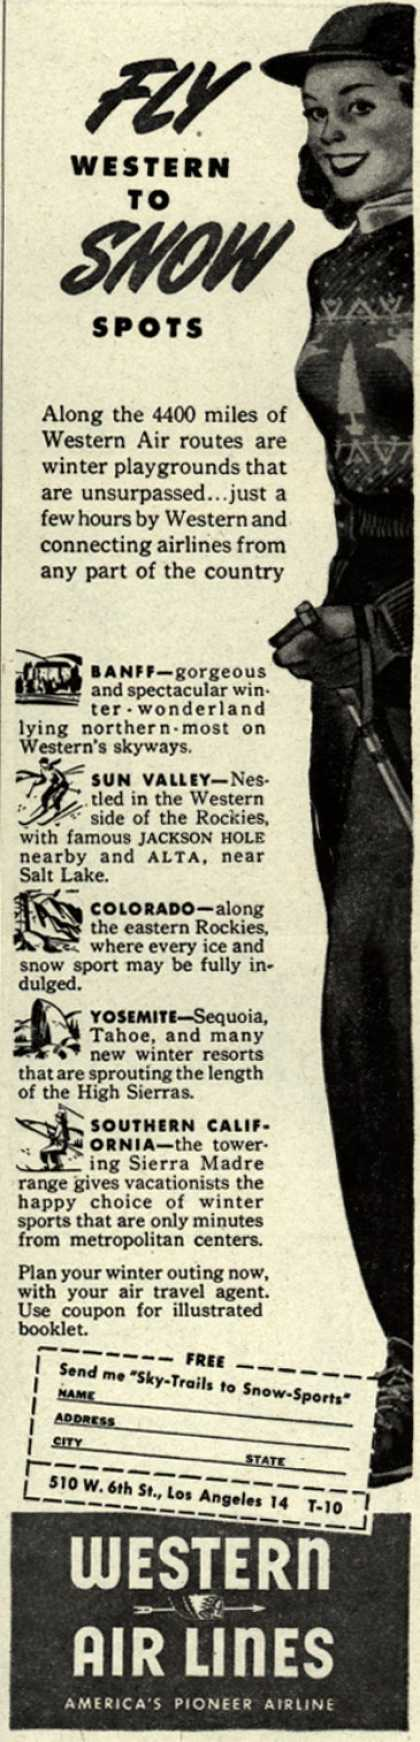 Western Air Line's Winter Sports Destinations – Fly Western to Snow Spots (1946)